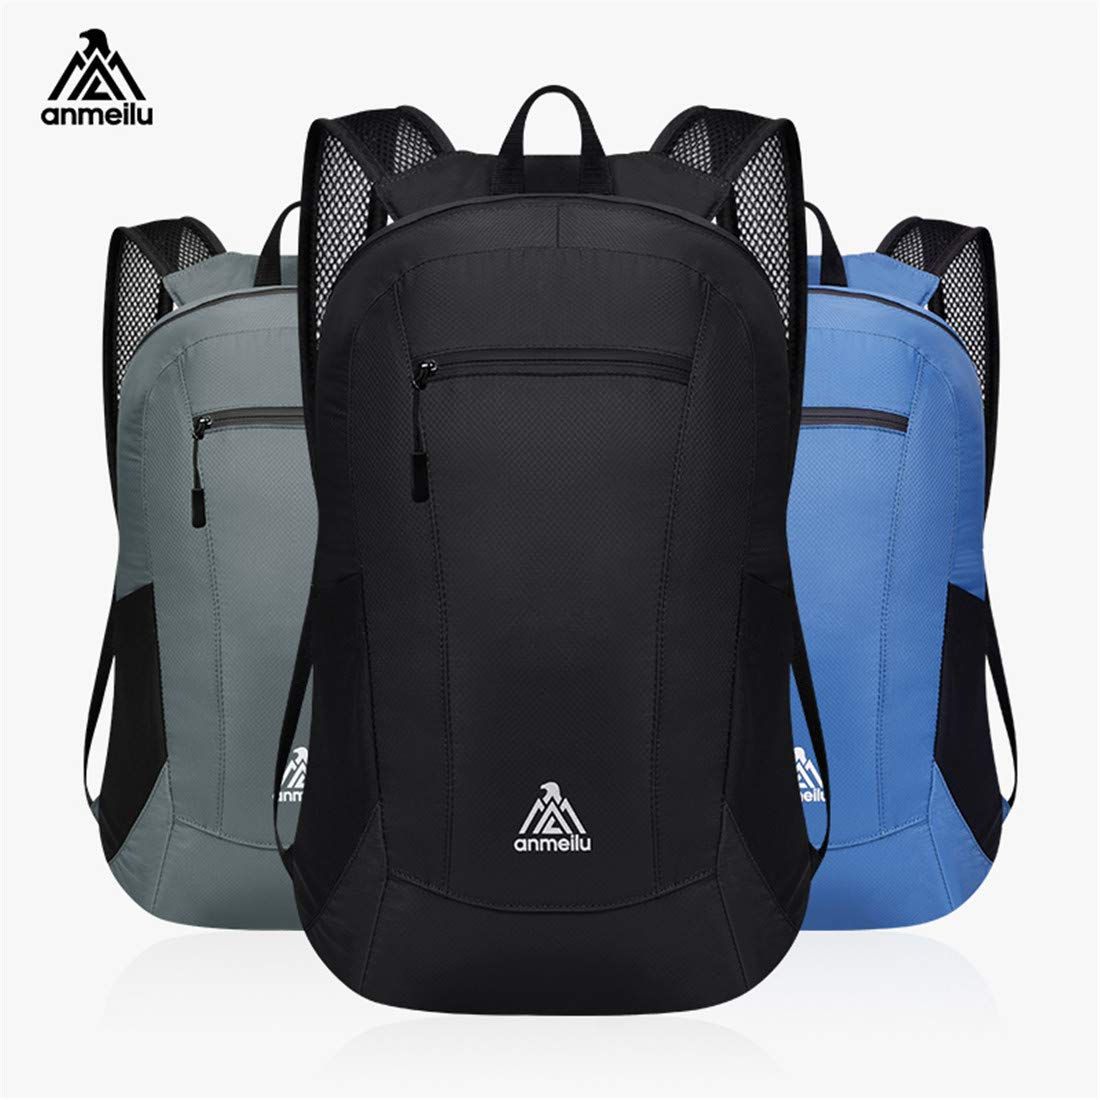 Fadsace Ultra Lightweight Durable Packable Water Resistant Travel Hiking Backpack Daypack Handy Foldable Camping Outdoor Backpack Little Bag